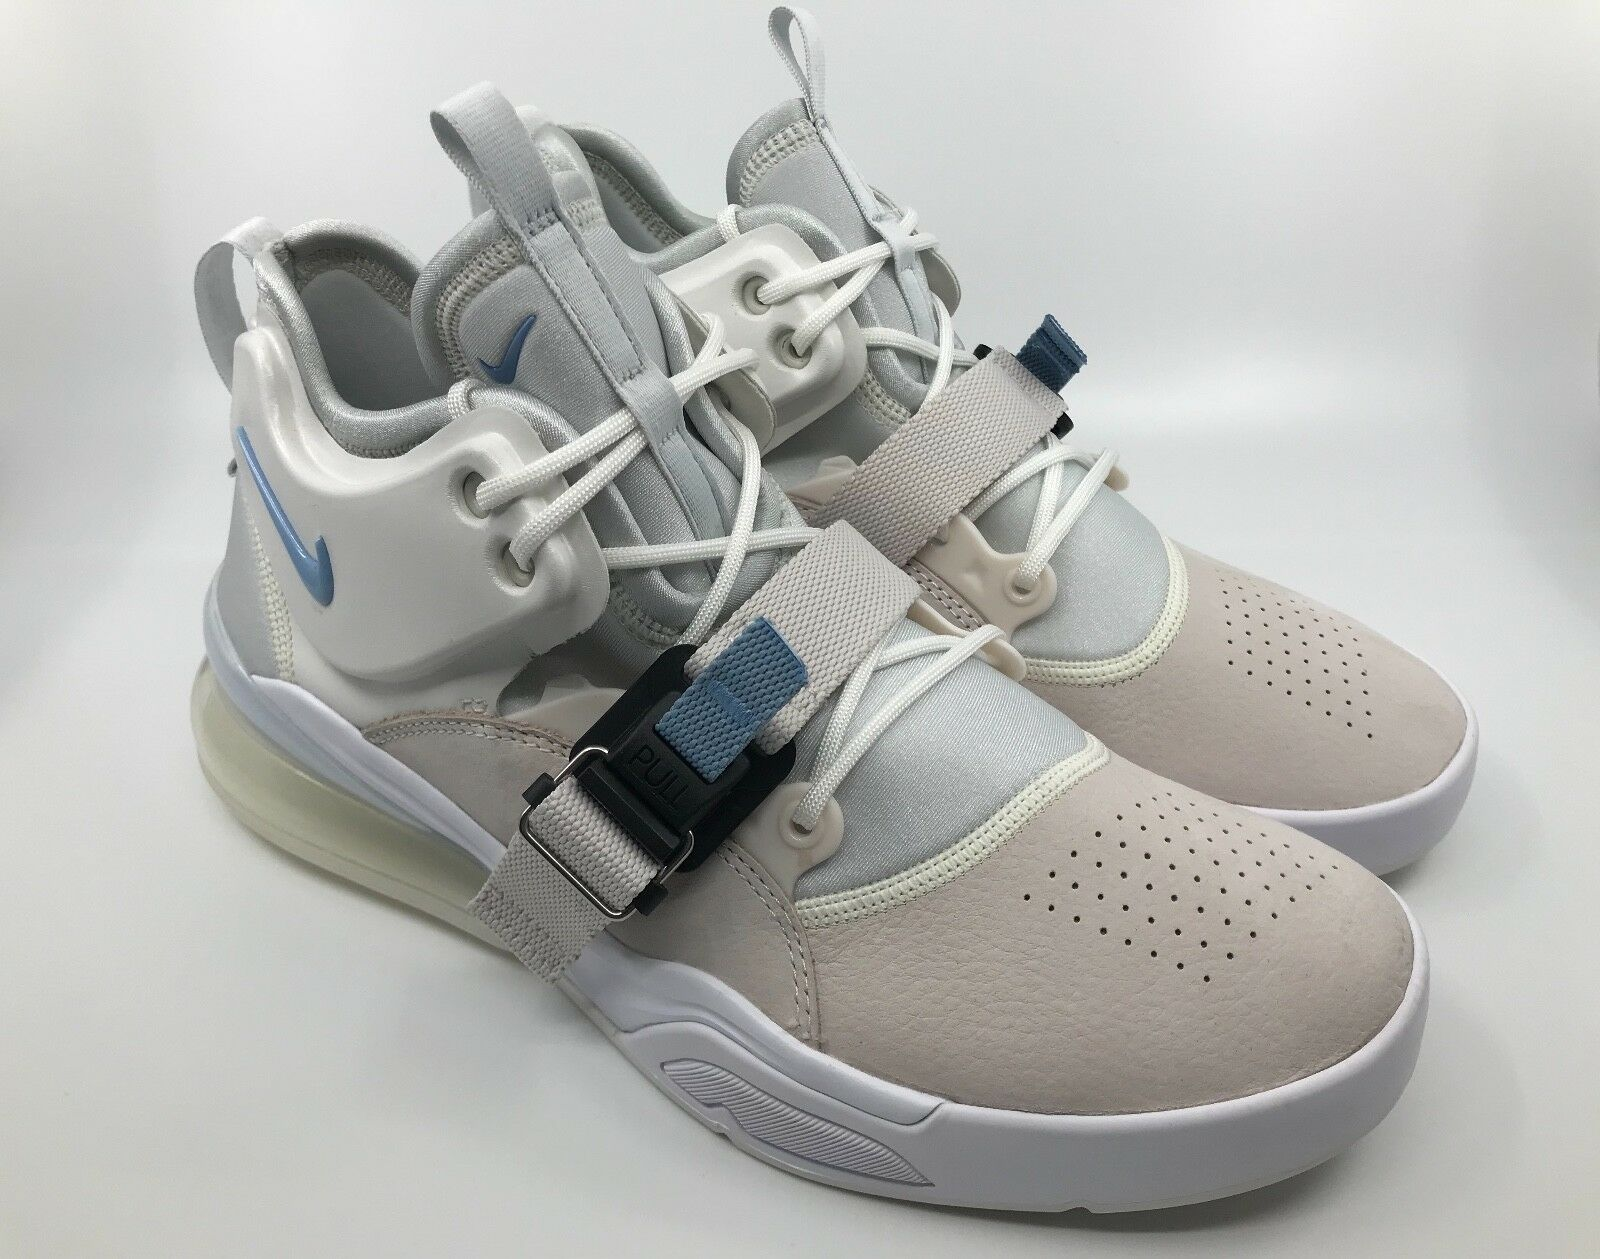 Männer Männer Männer - nike air force 270 -